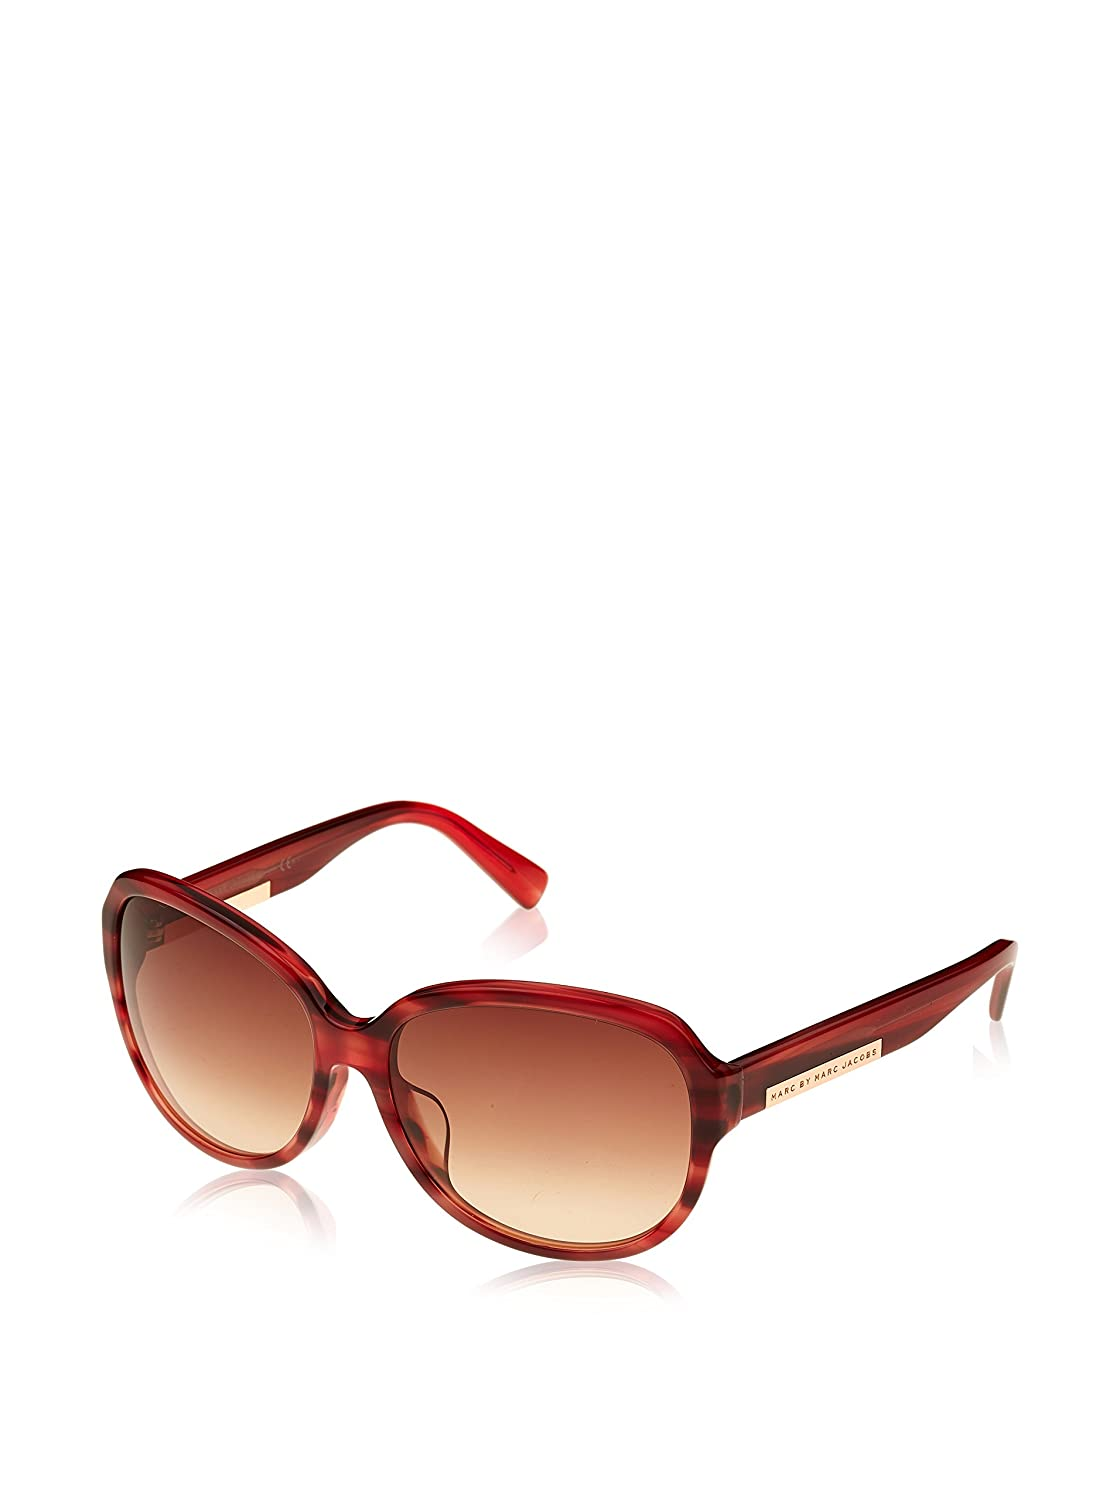 Marc by Marc Jacobs Herren Sonnenbrille Mmj 446/F/S, Braun (Red), One size